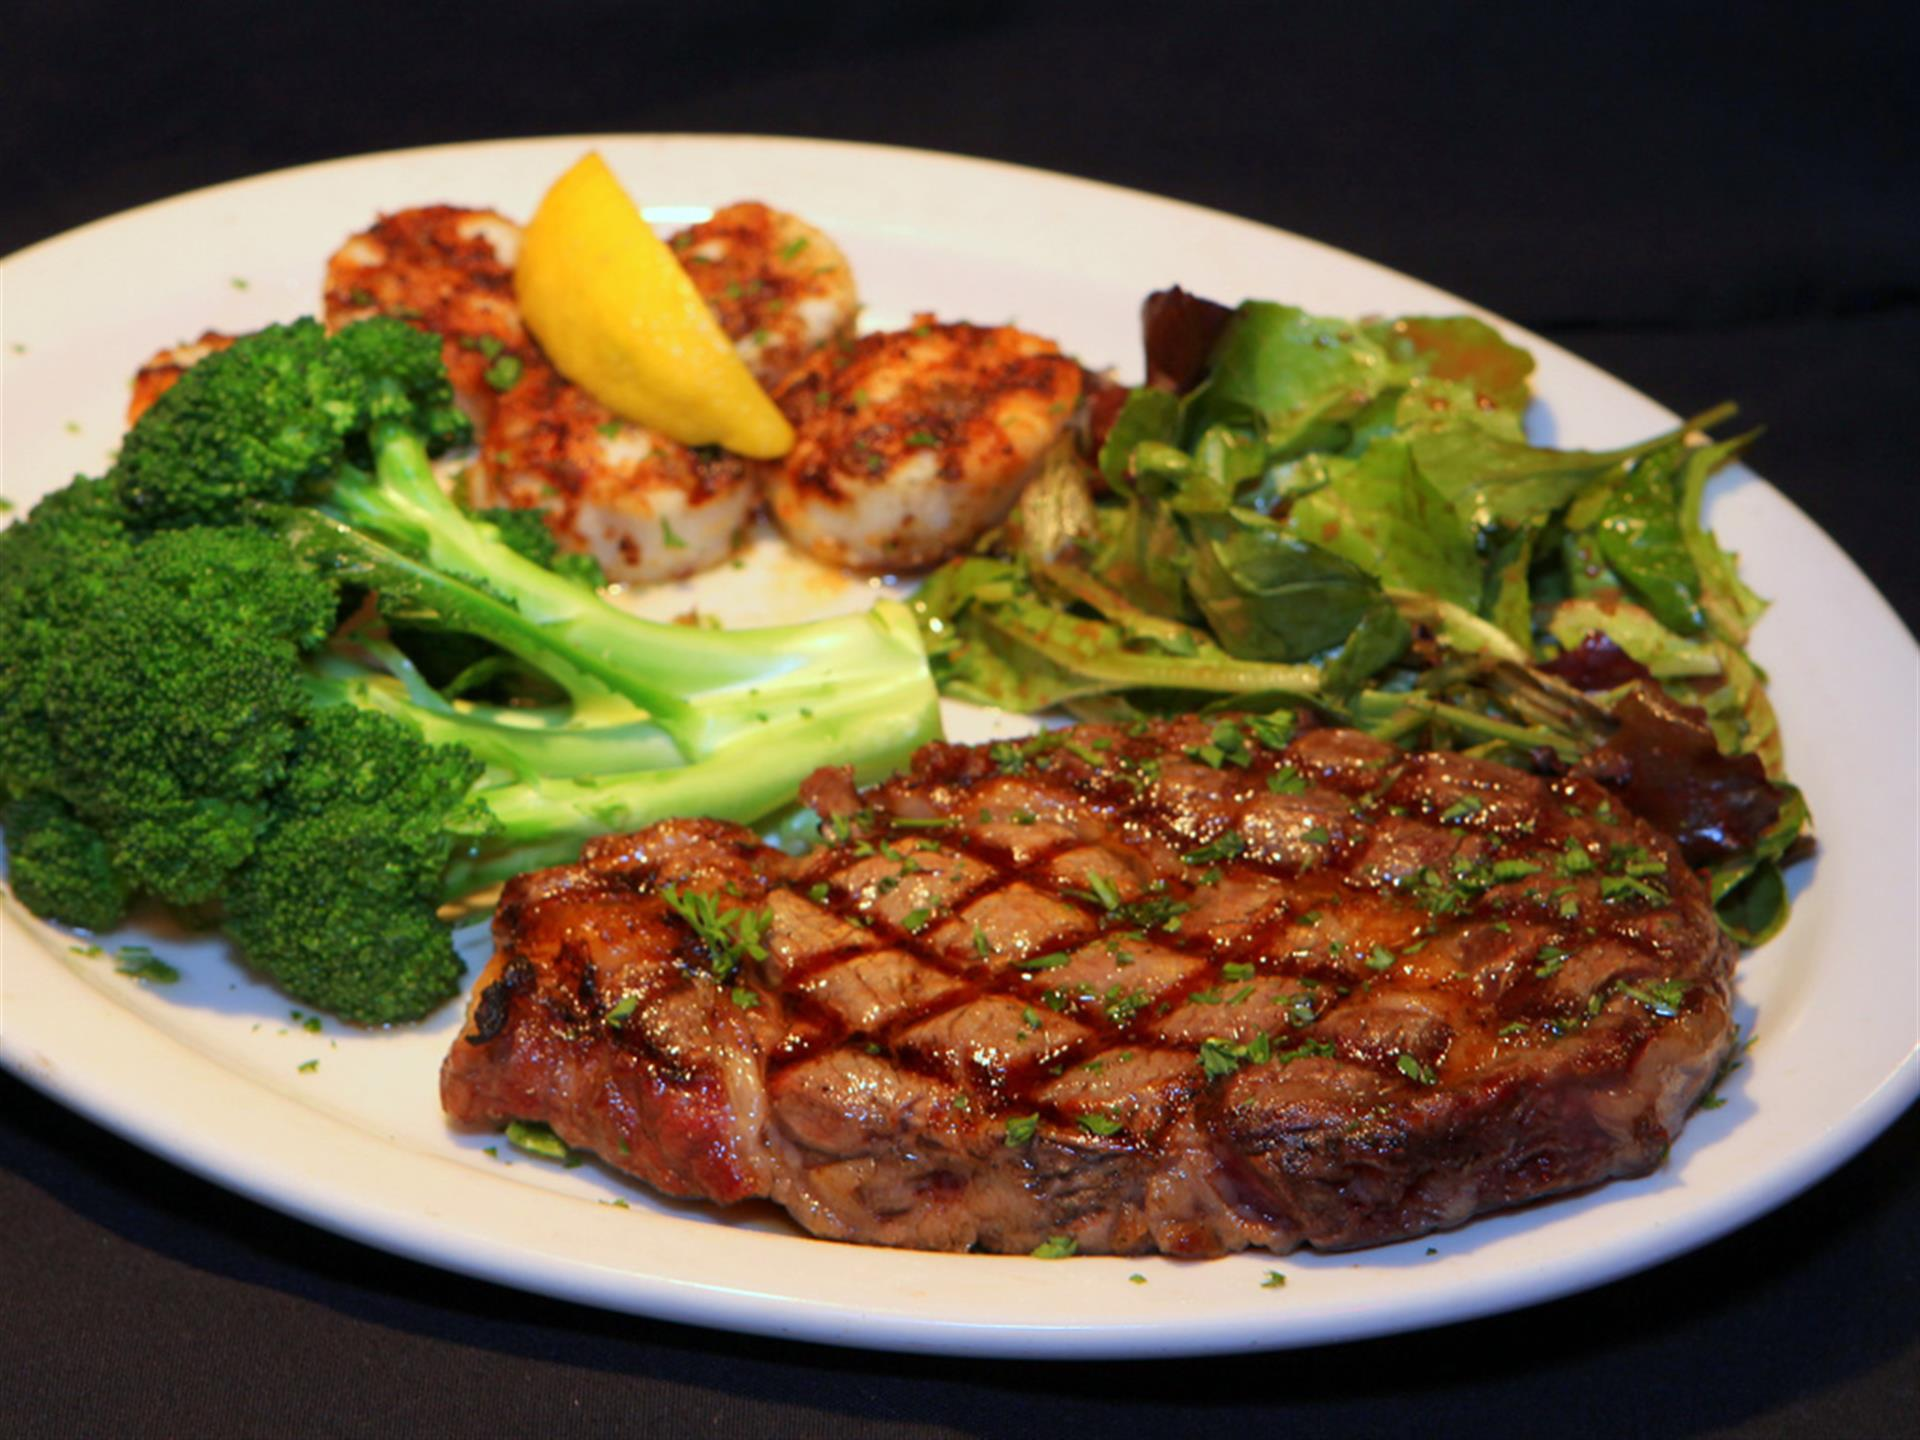 grilled steak with broccoli and salad